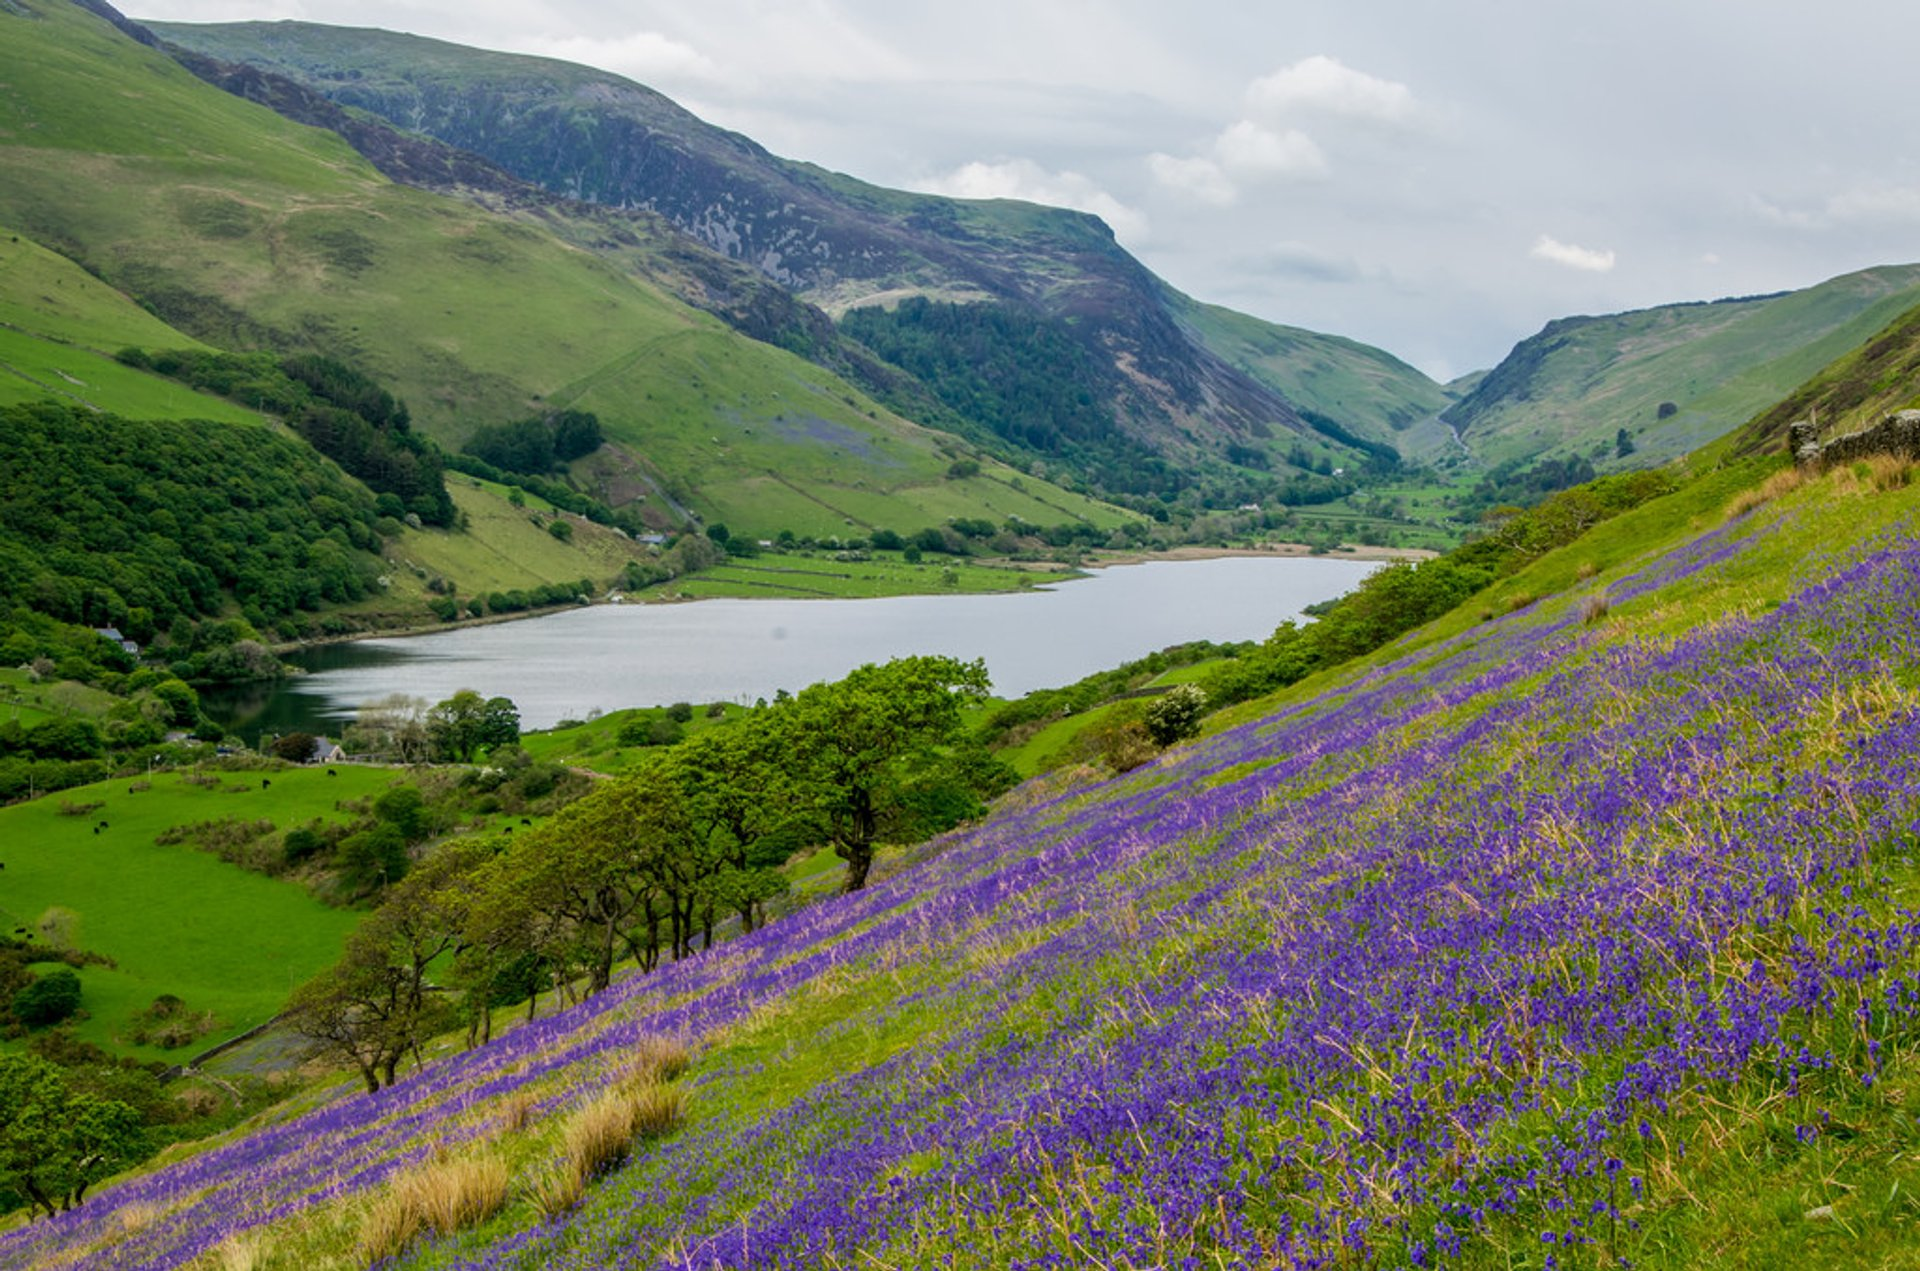 Bluebells in Bloom in Wales - Best Season 2020